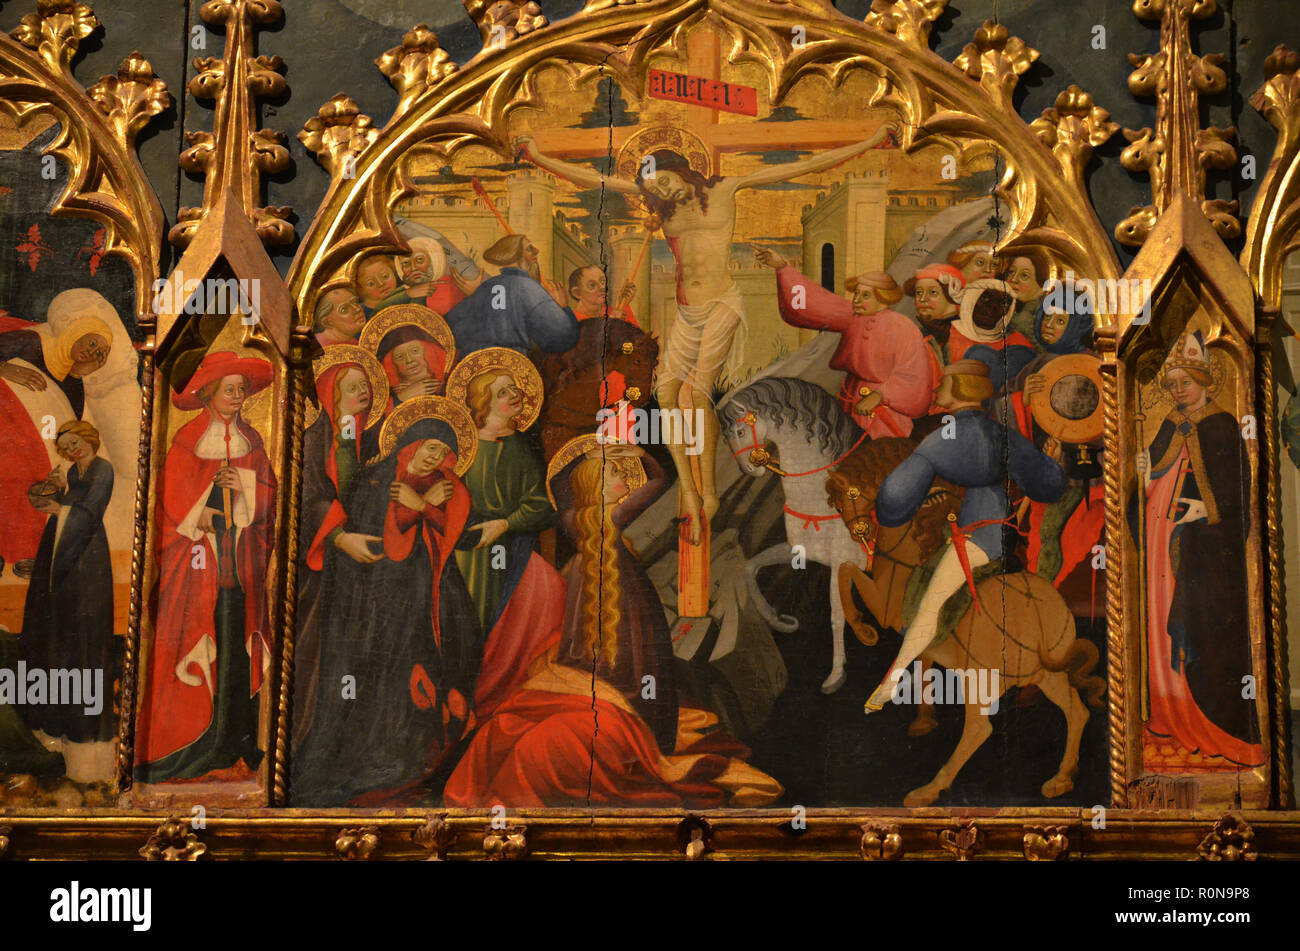 Details of the Fifteenth-century reredos showing scenes in the life of Saint John and Saint Catherine, Sigüenza Cathedral (Spain) - Stock Image